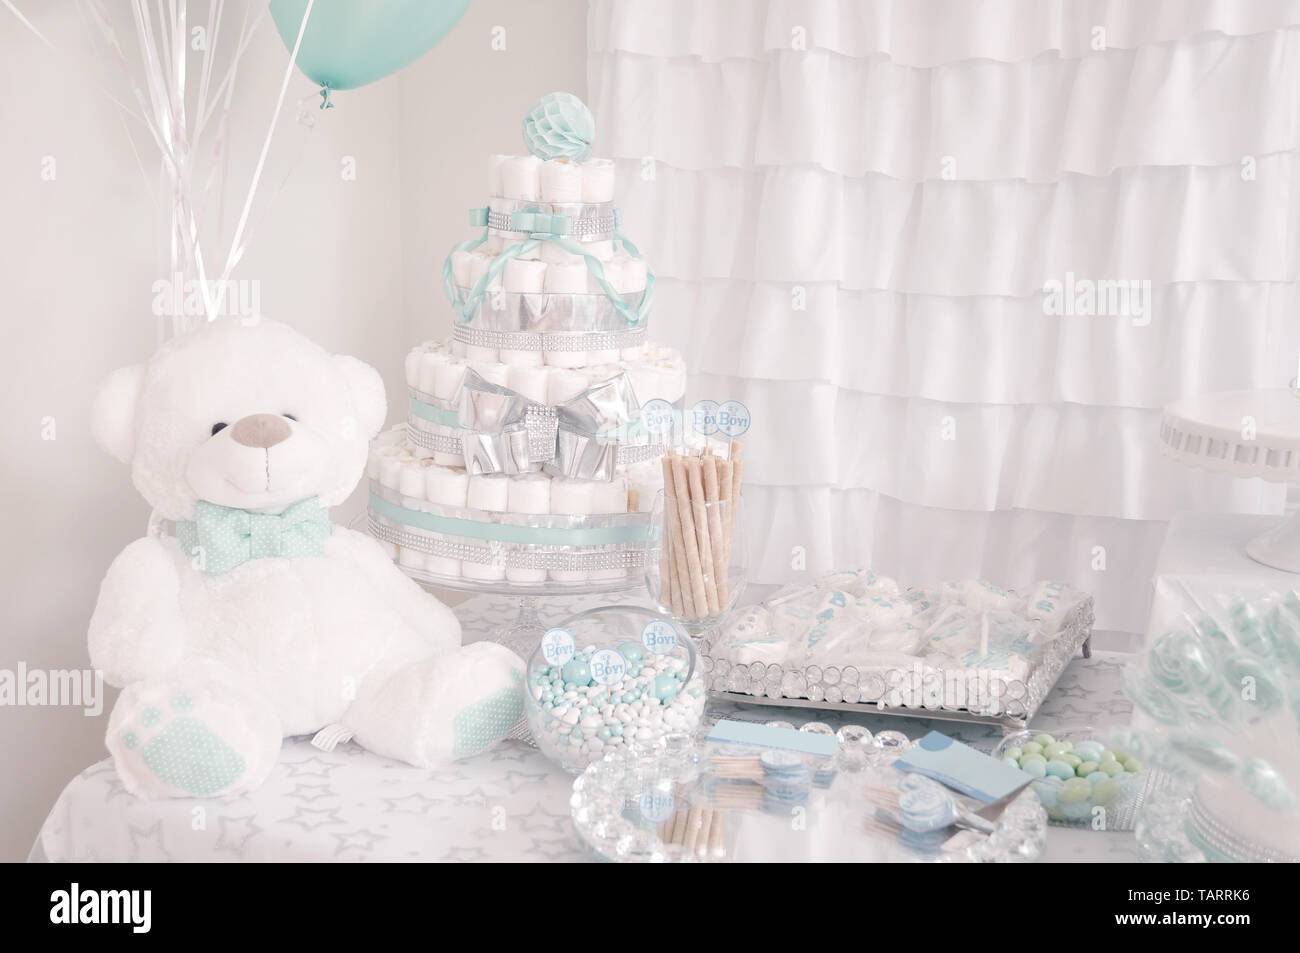 Decoracion Para Fiesta De Baby Shower.Decoracion Para Una Fiesta De Baby Shower Linda Torta De